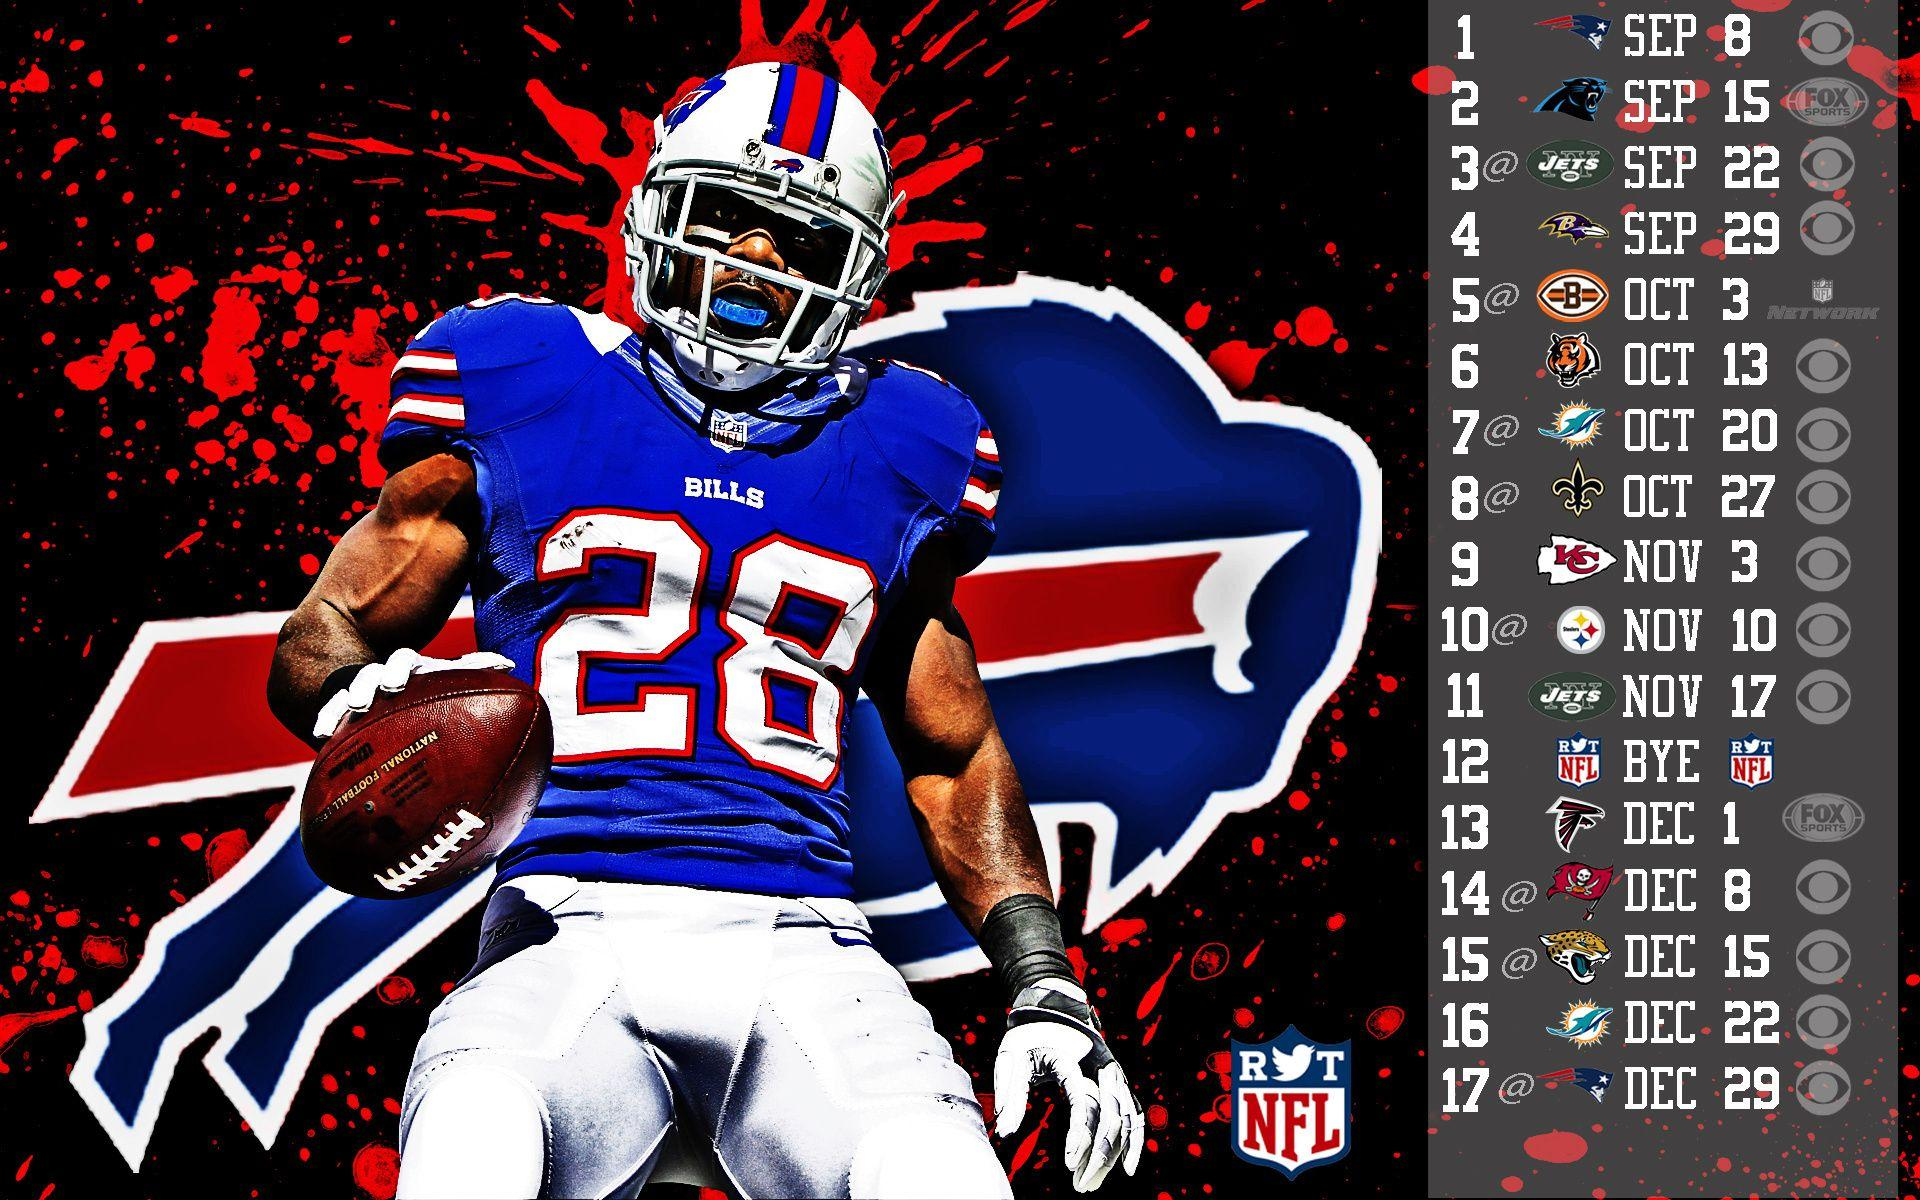 1920x1200 Nfl, Schedule, Sports, Buffalo Bills Schedule, American